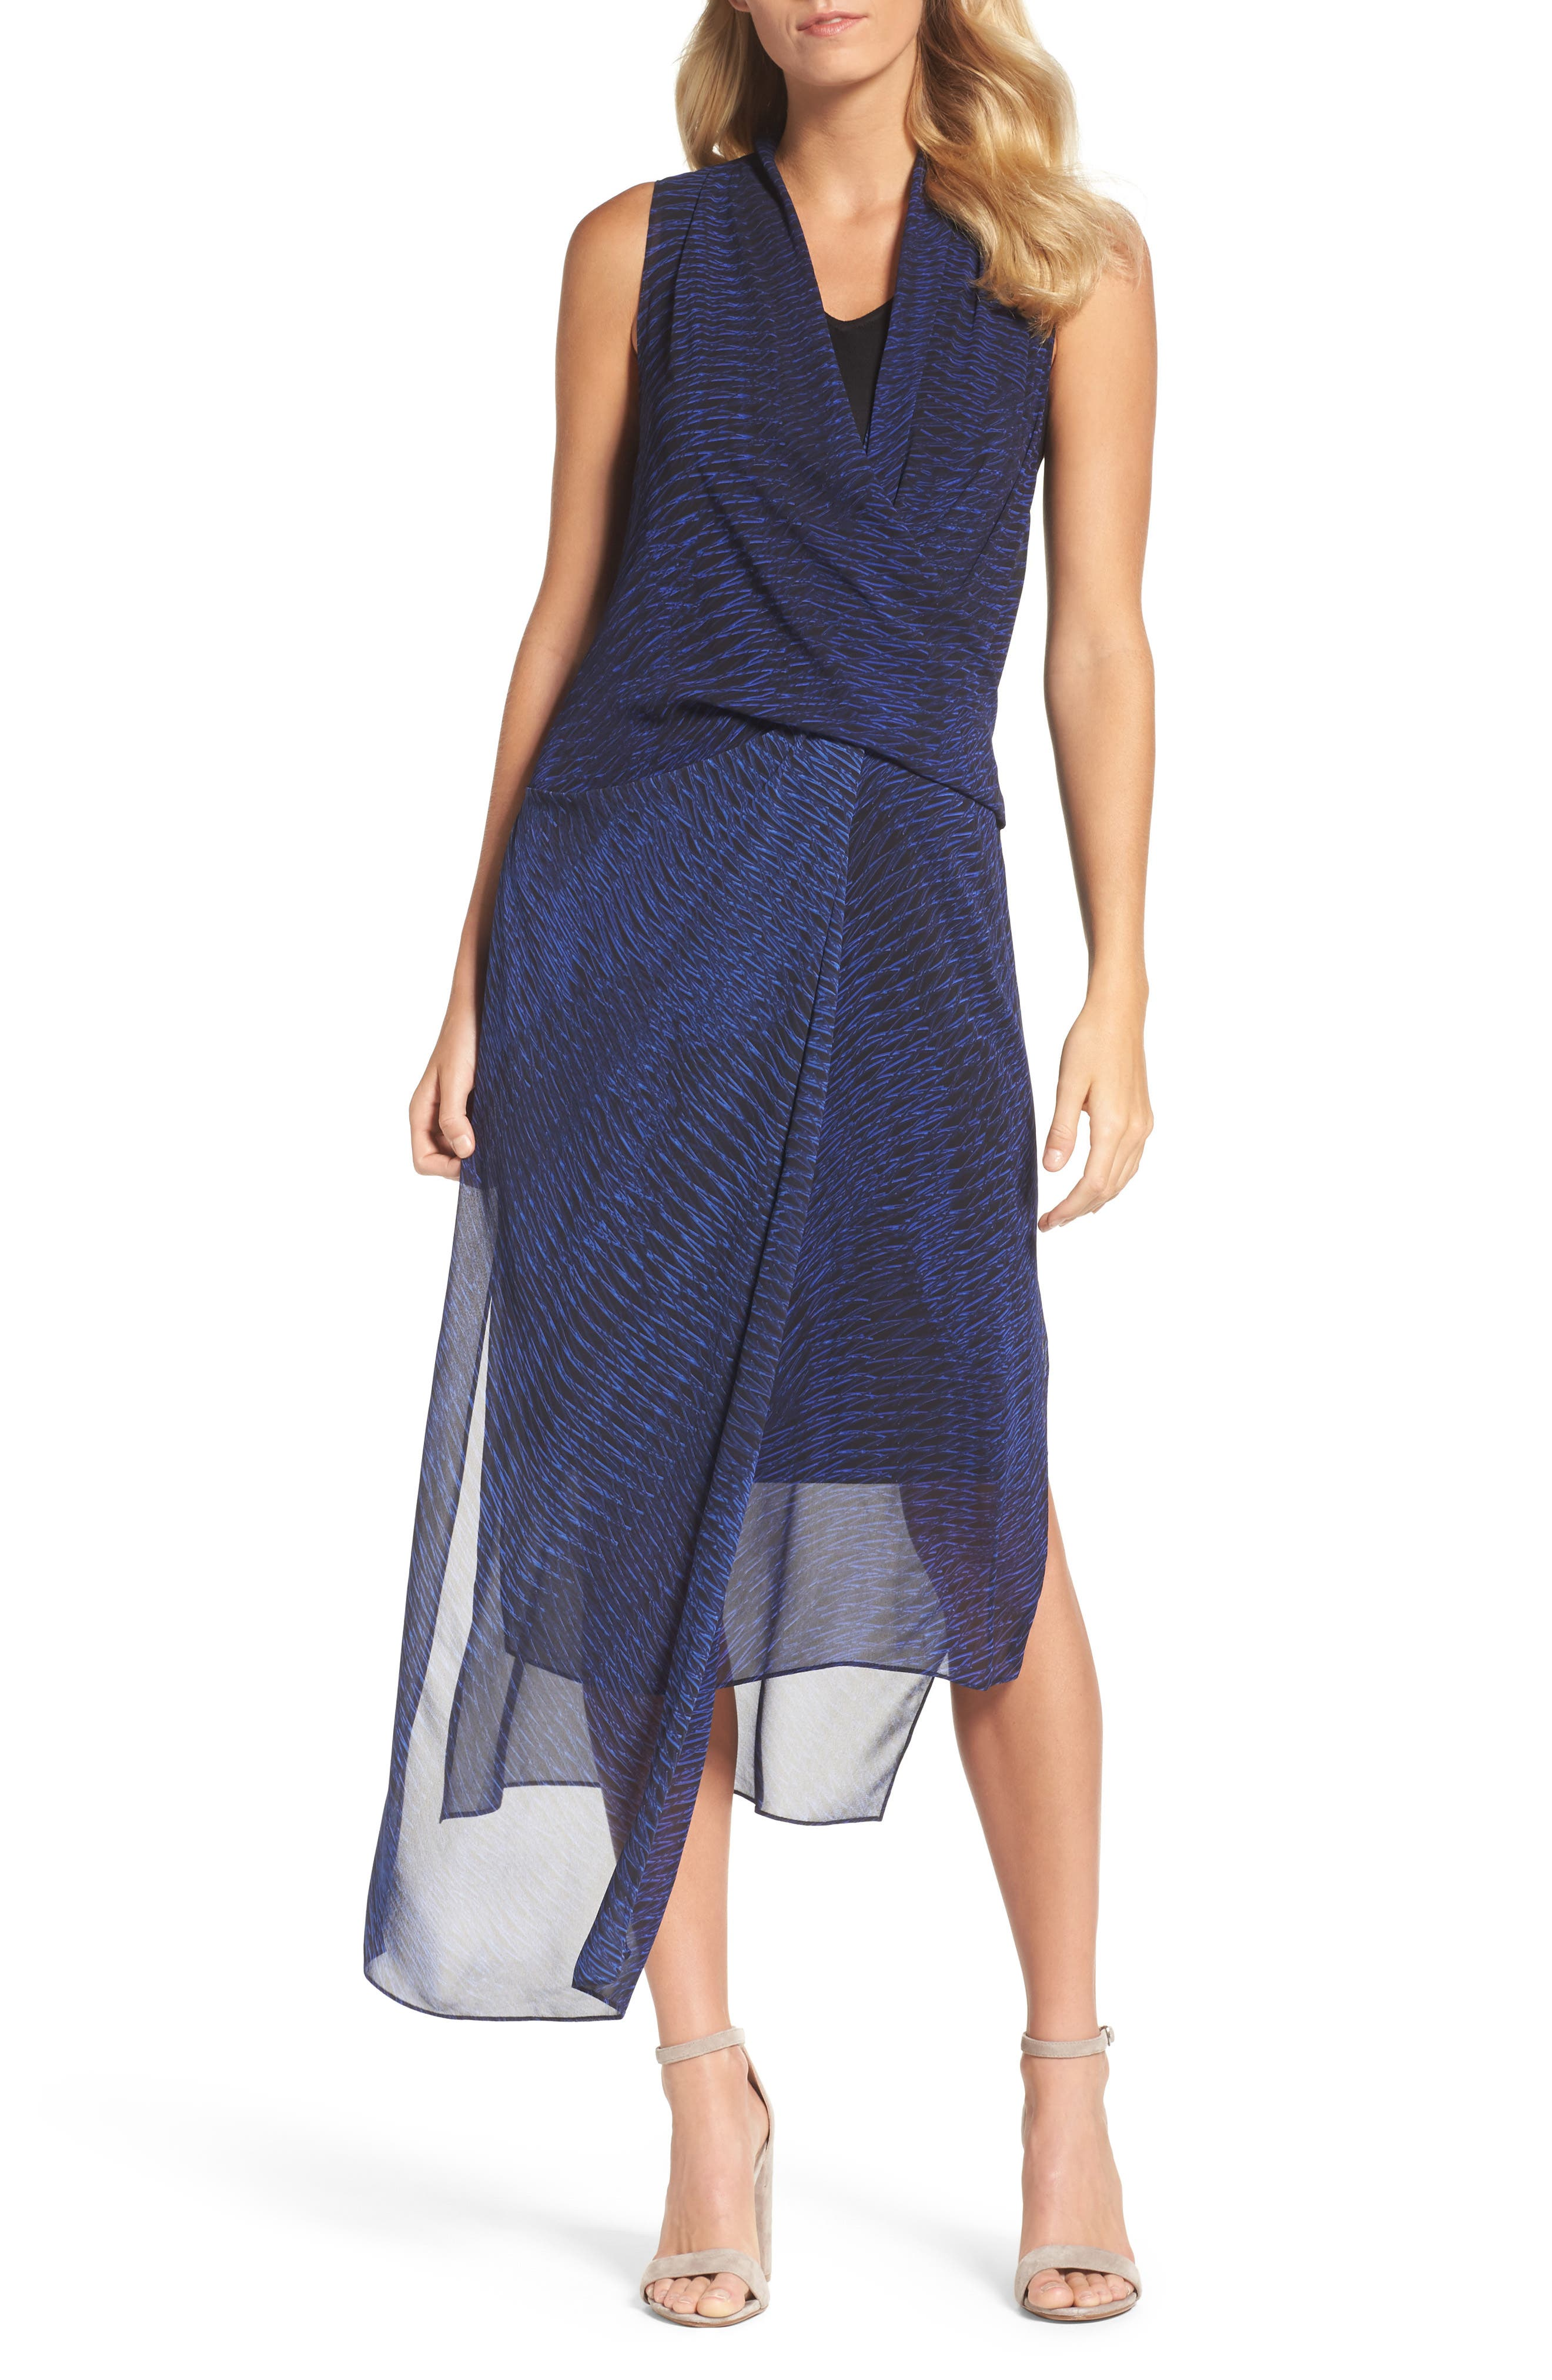 Blue Streaks Midi Dress,                             Main thumbnail 1, color,                             465